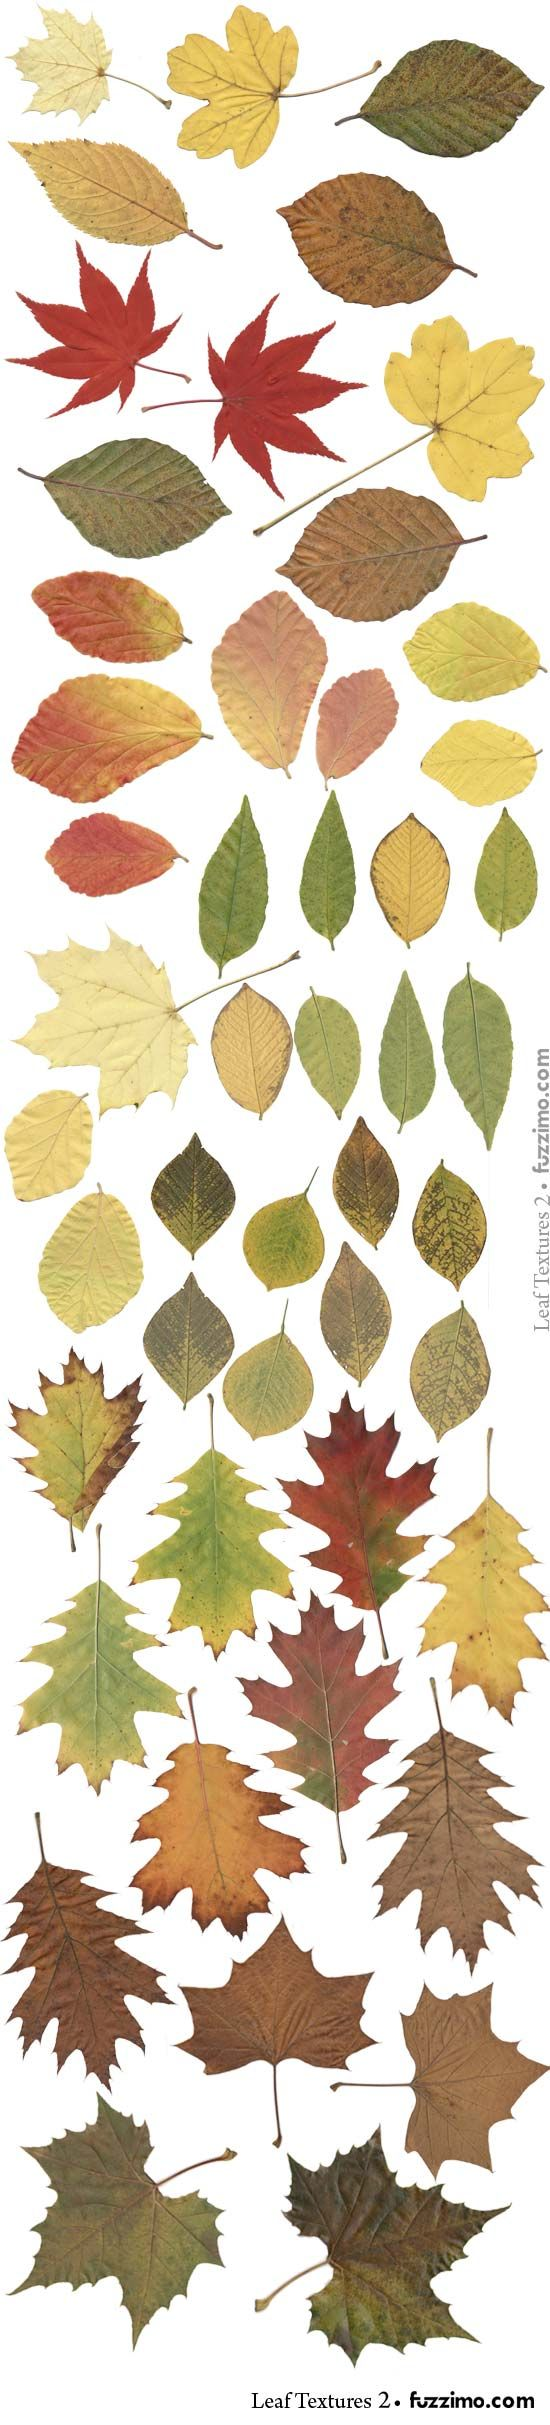 More leaf images from Fuzzimo.comfzm-Leaf-Textures-(2)-02.jpg 550×2,425 pixels …